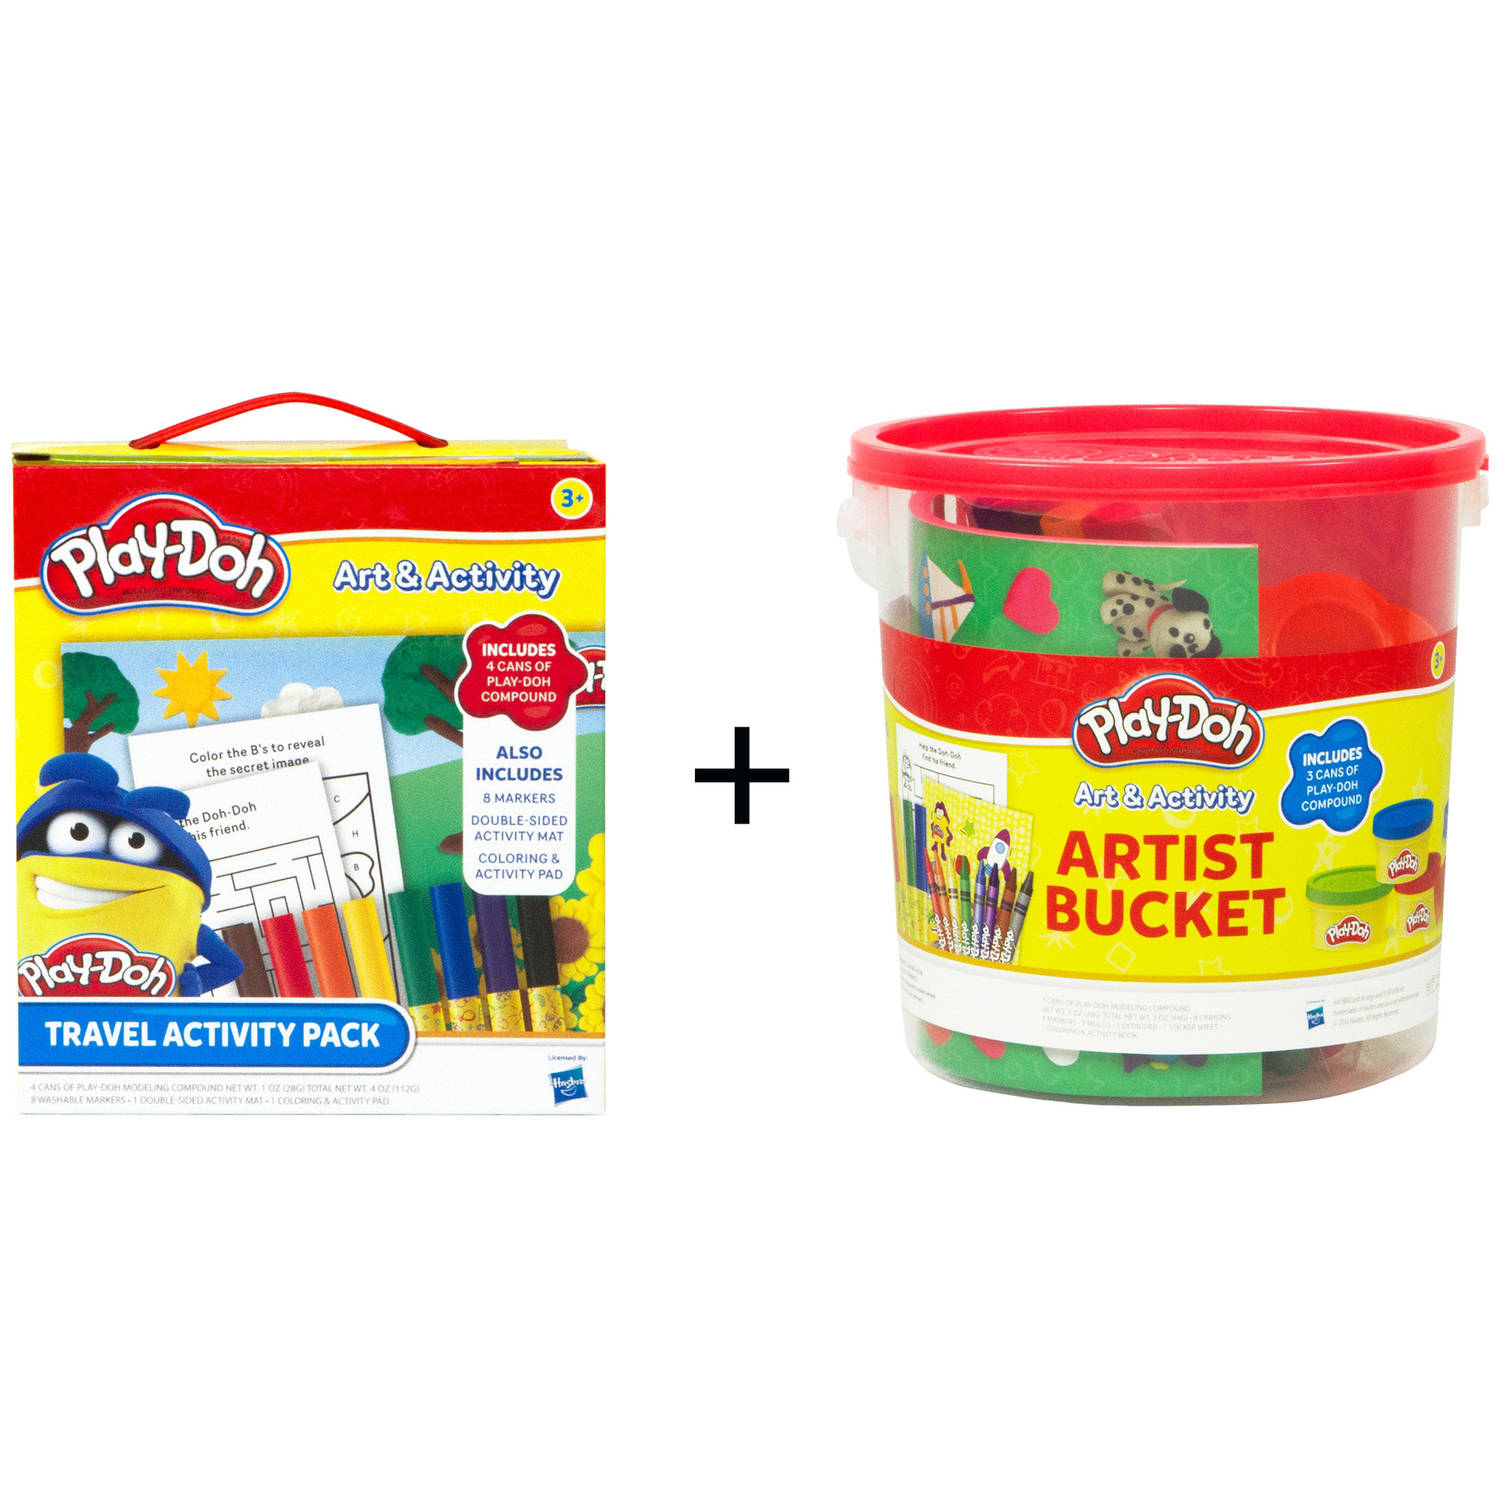 Play-Doh Travel Activity Pack and Play-Doh Large Activity Bucket Combo Set